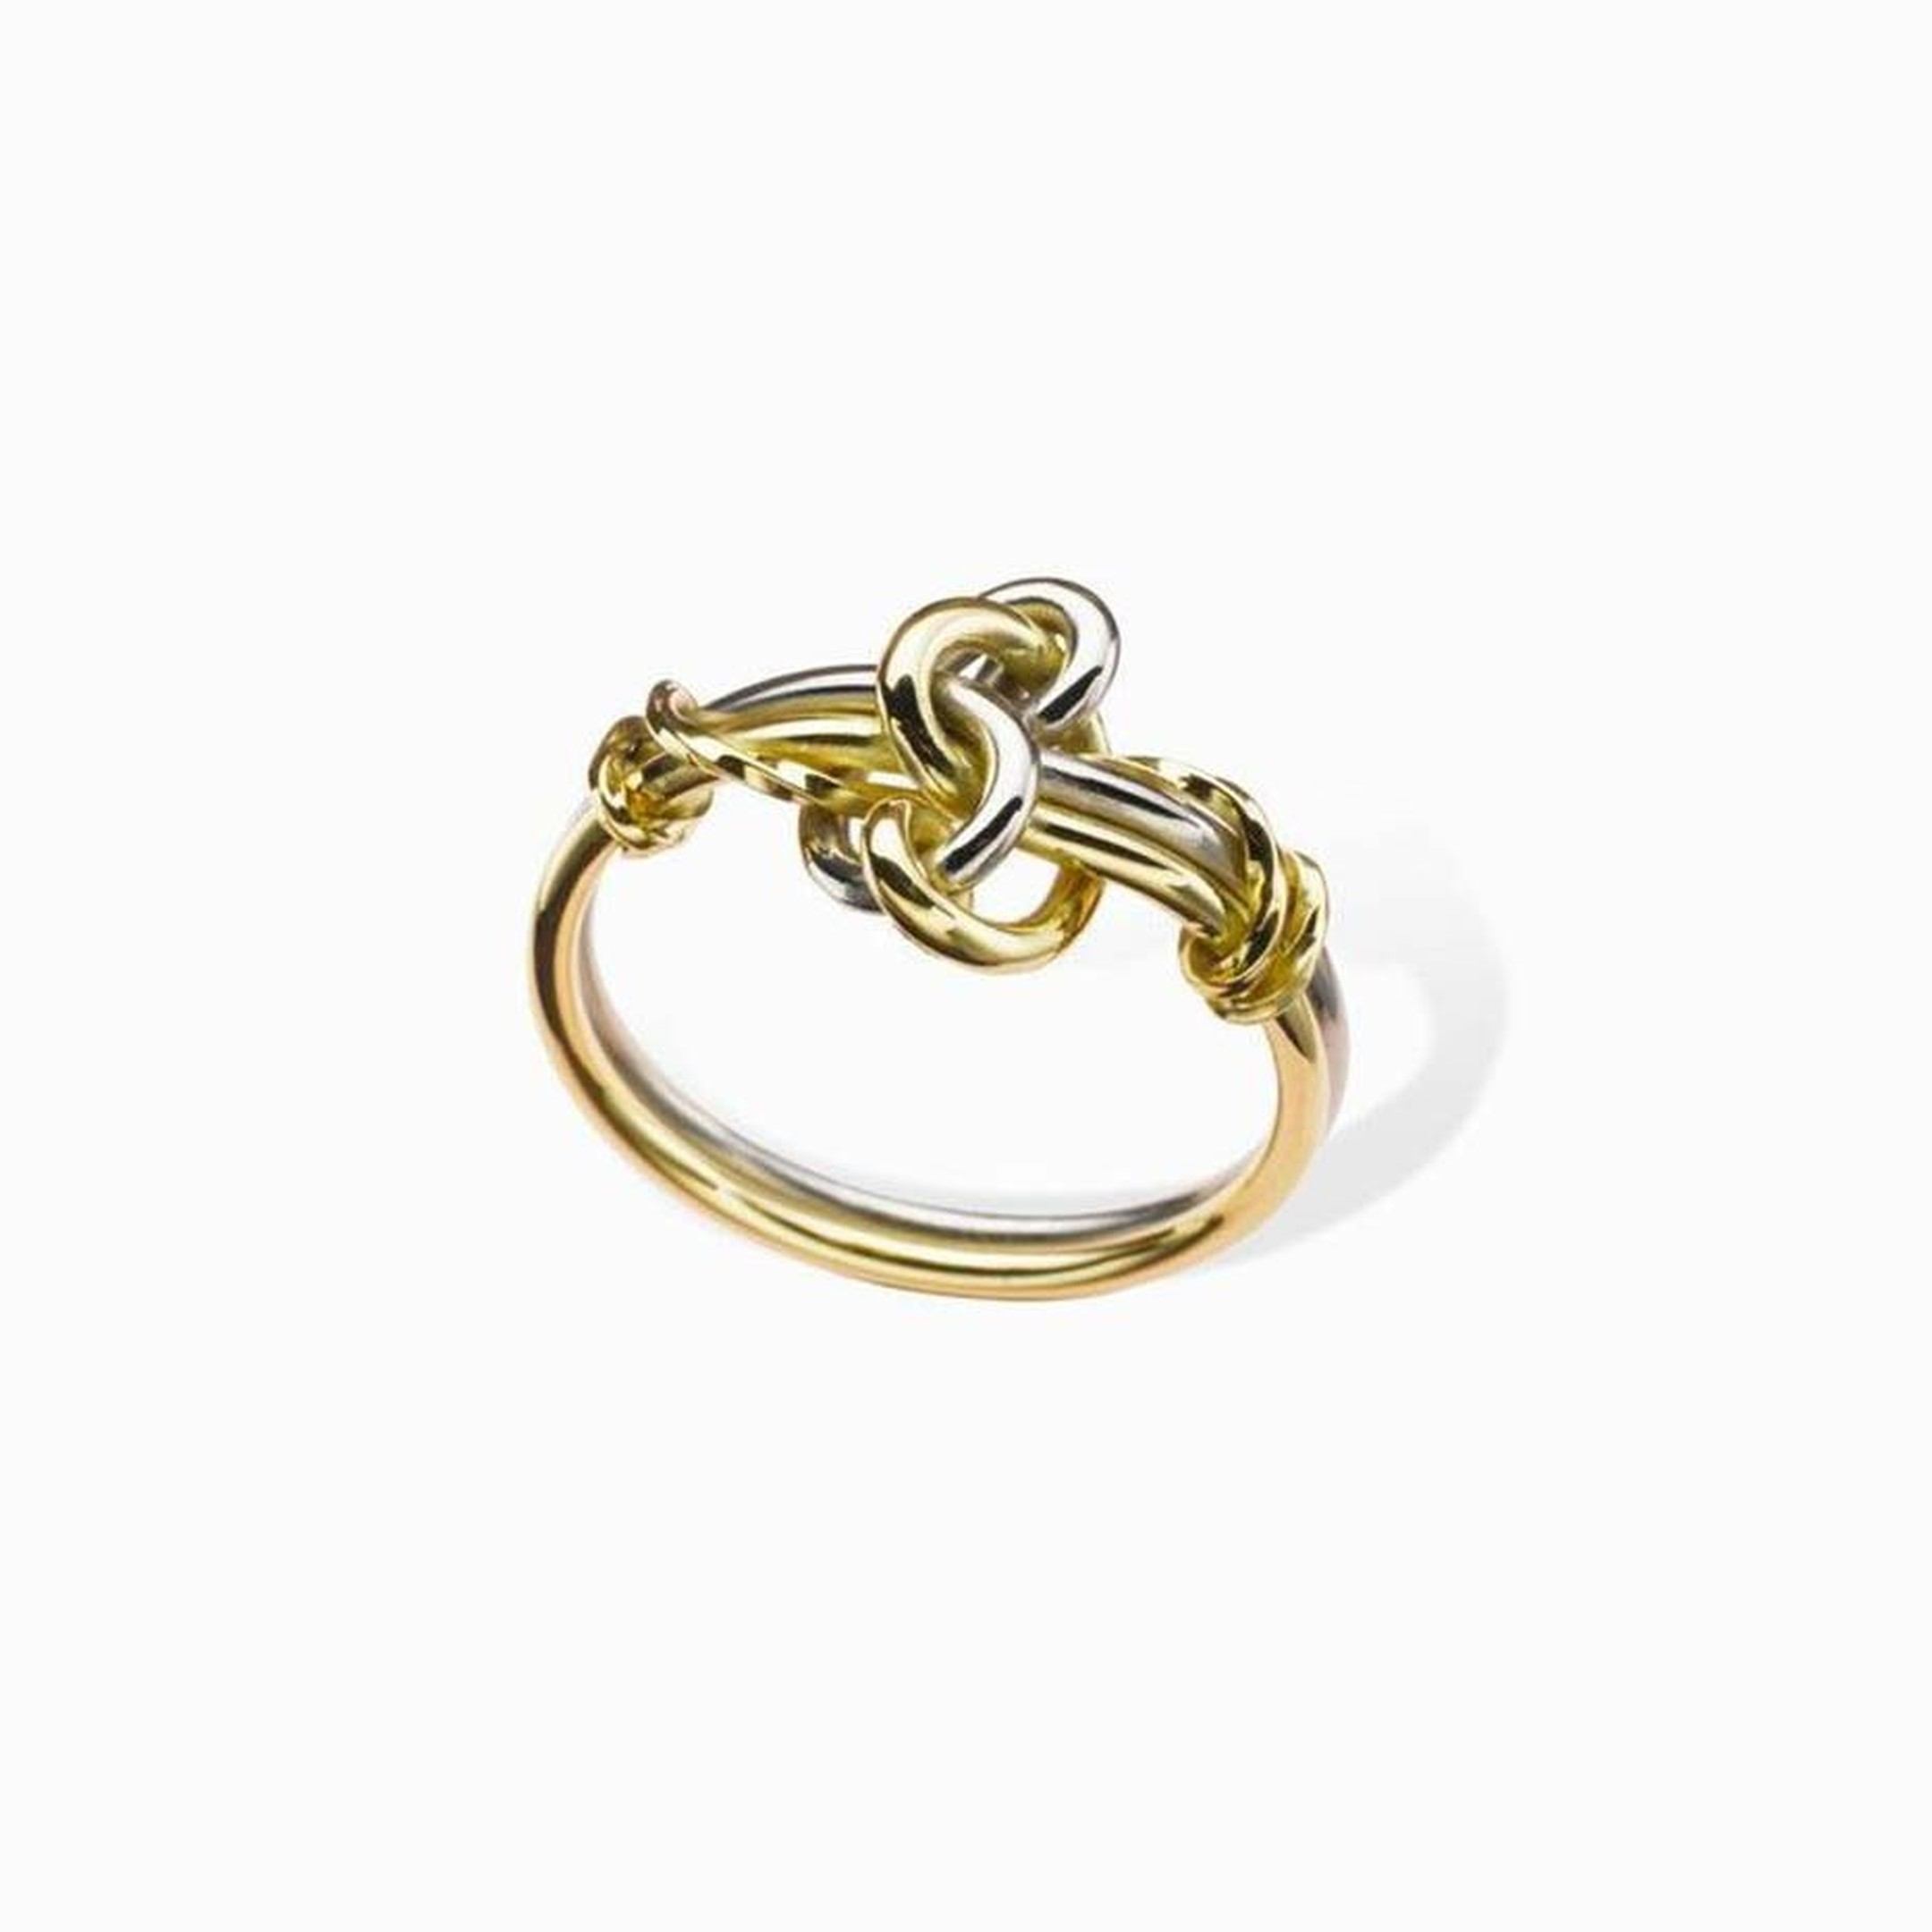 Erica Sharpe's Swan ring is crafted from white and yellow Fairtrade gold.